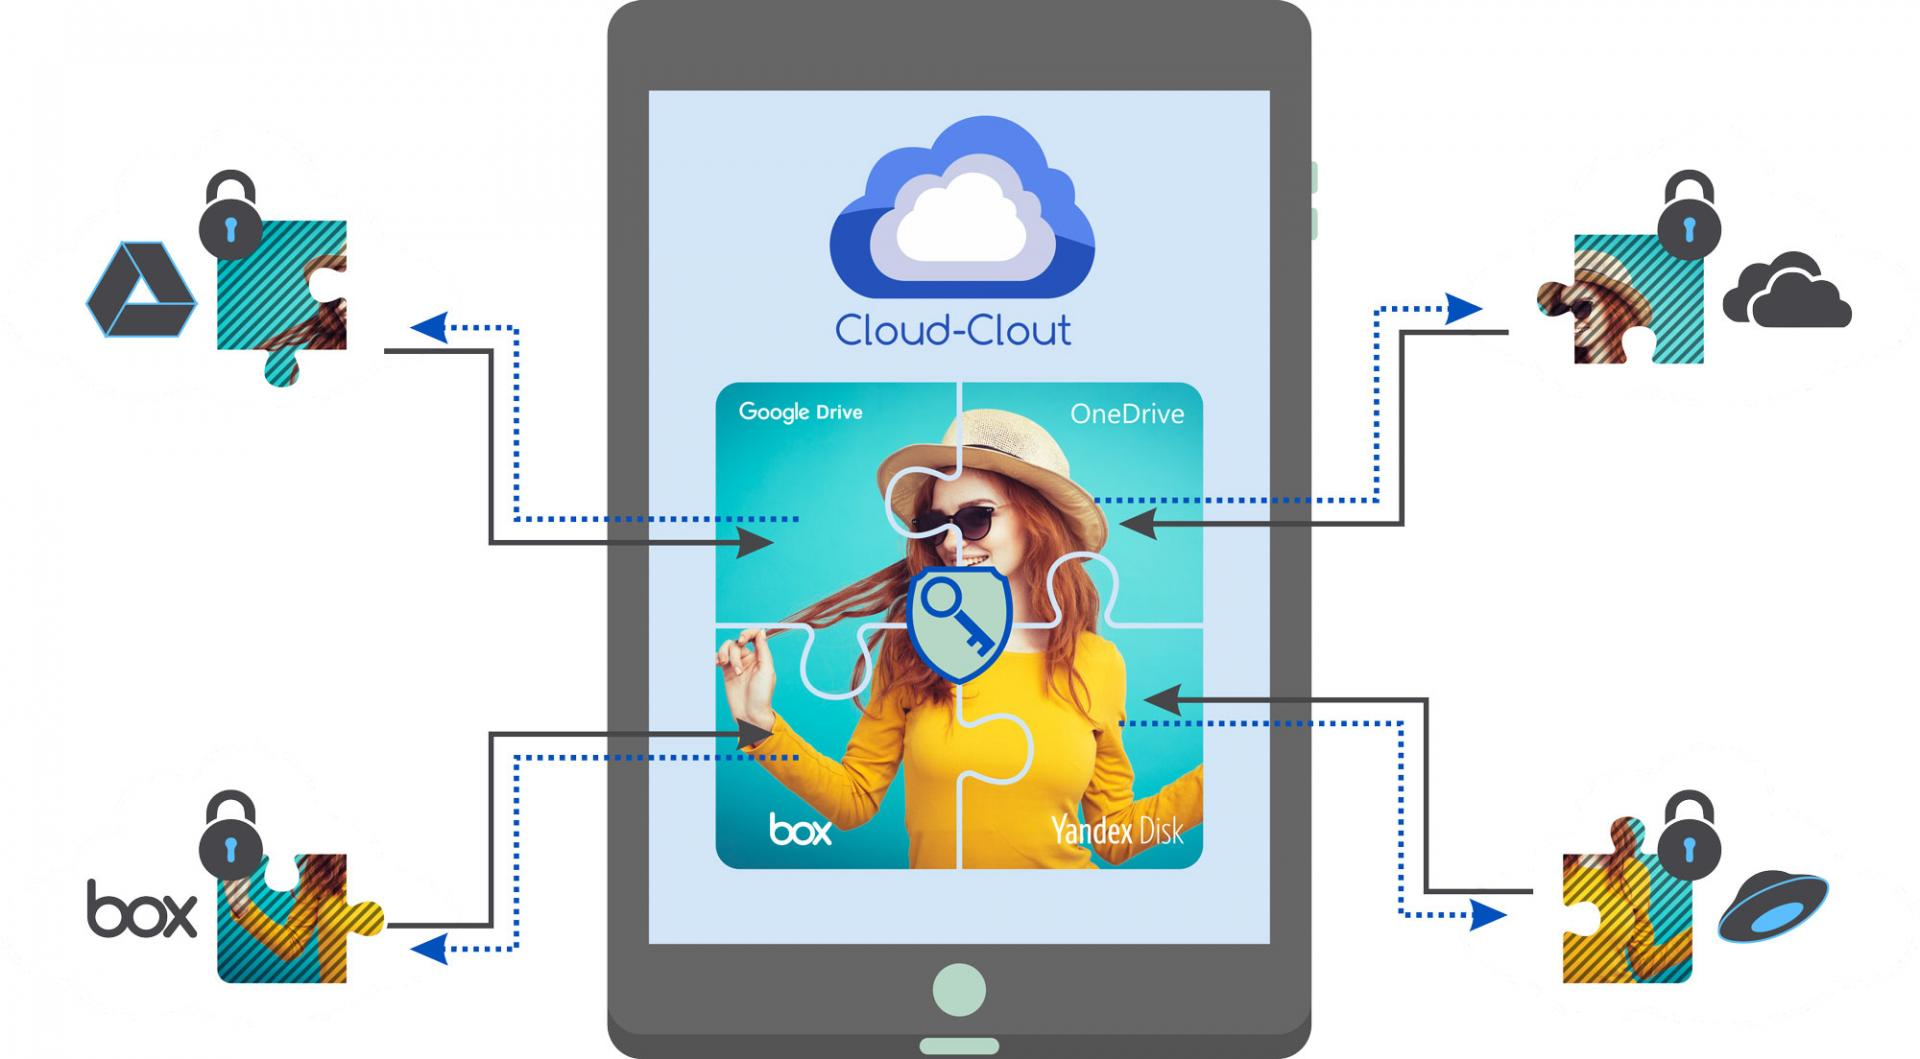 Cloud-Clout for Android — безопасный способ хранить данные в облачных сервисах